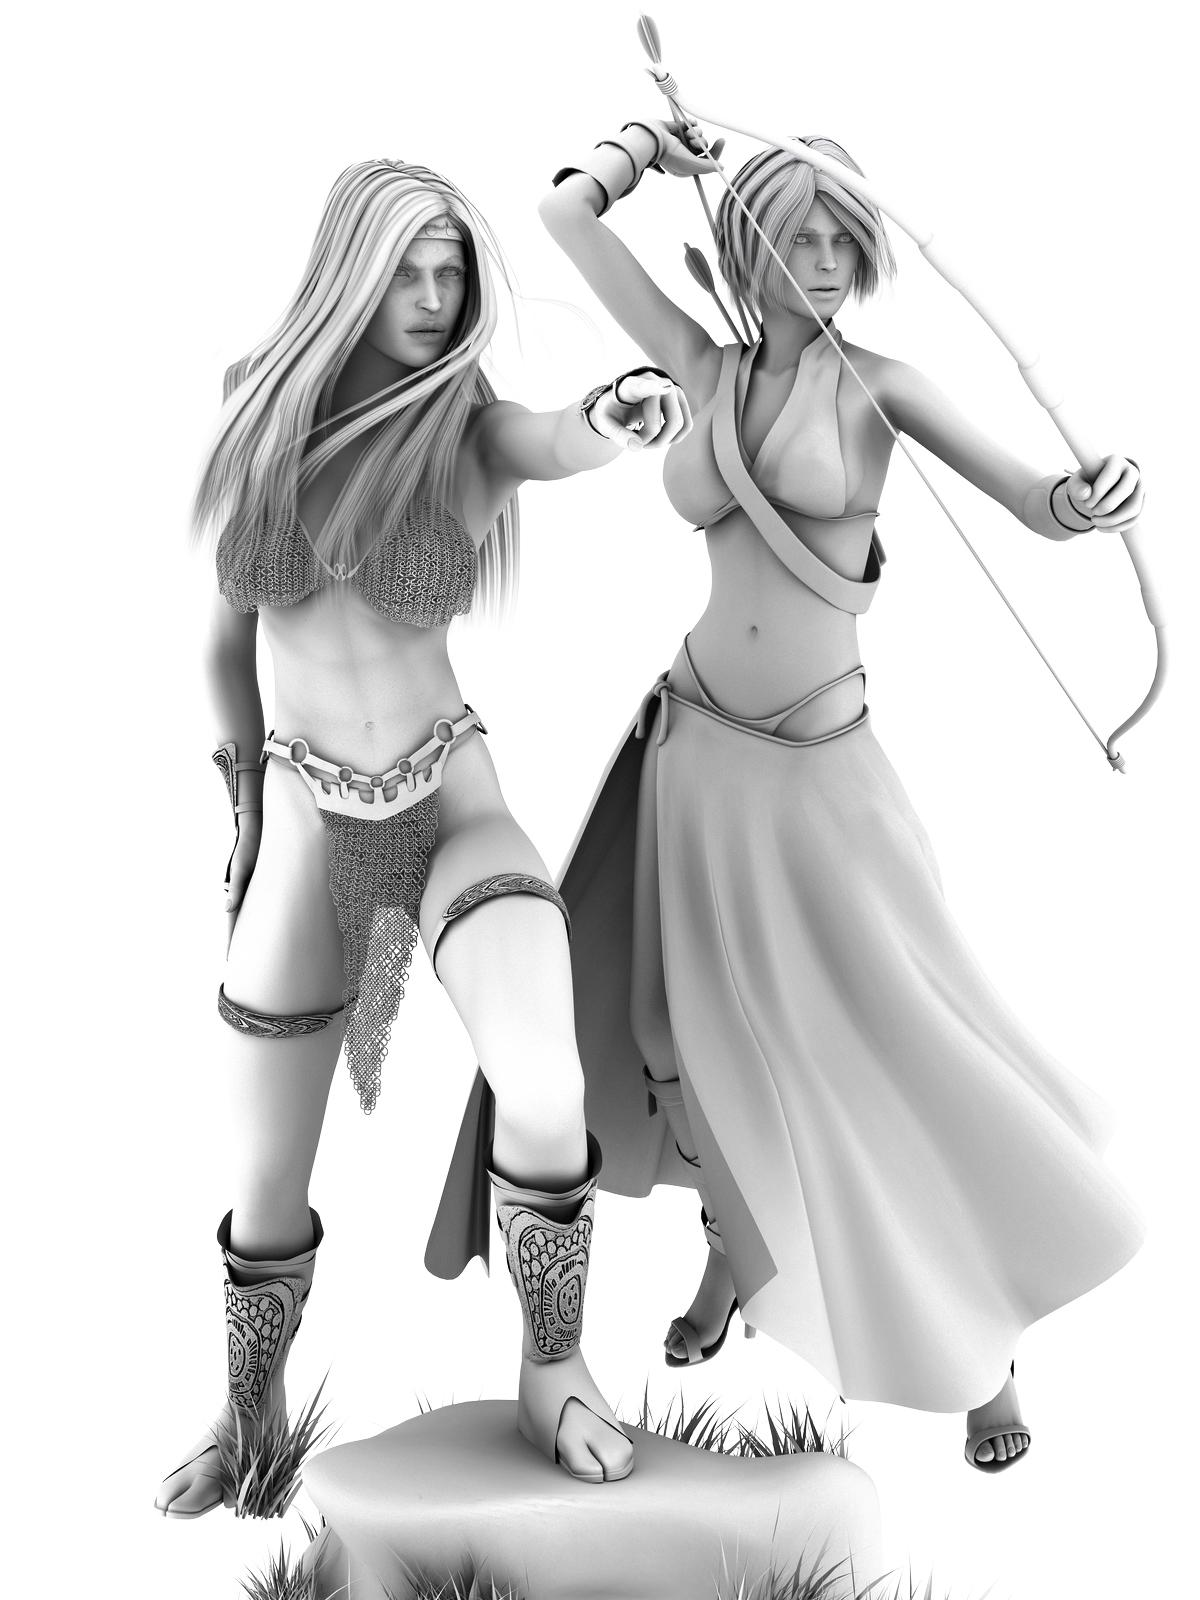 Sonja and Huntress - Black & White by Thane888